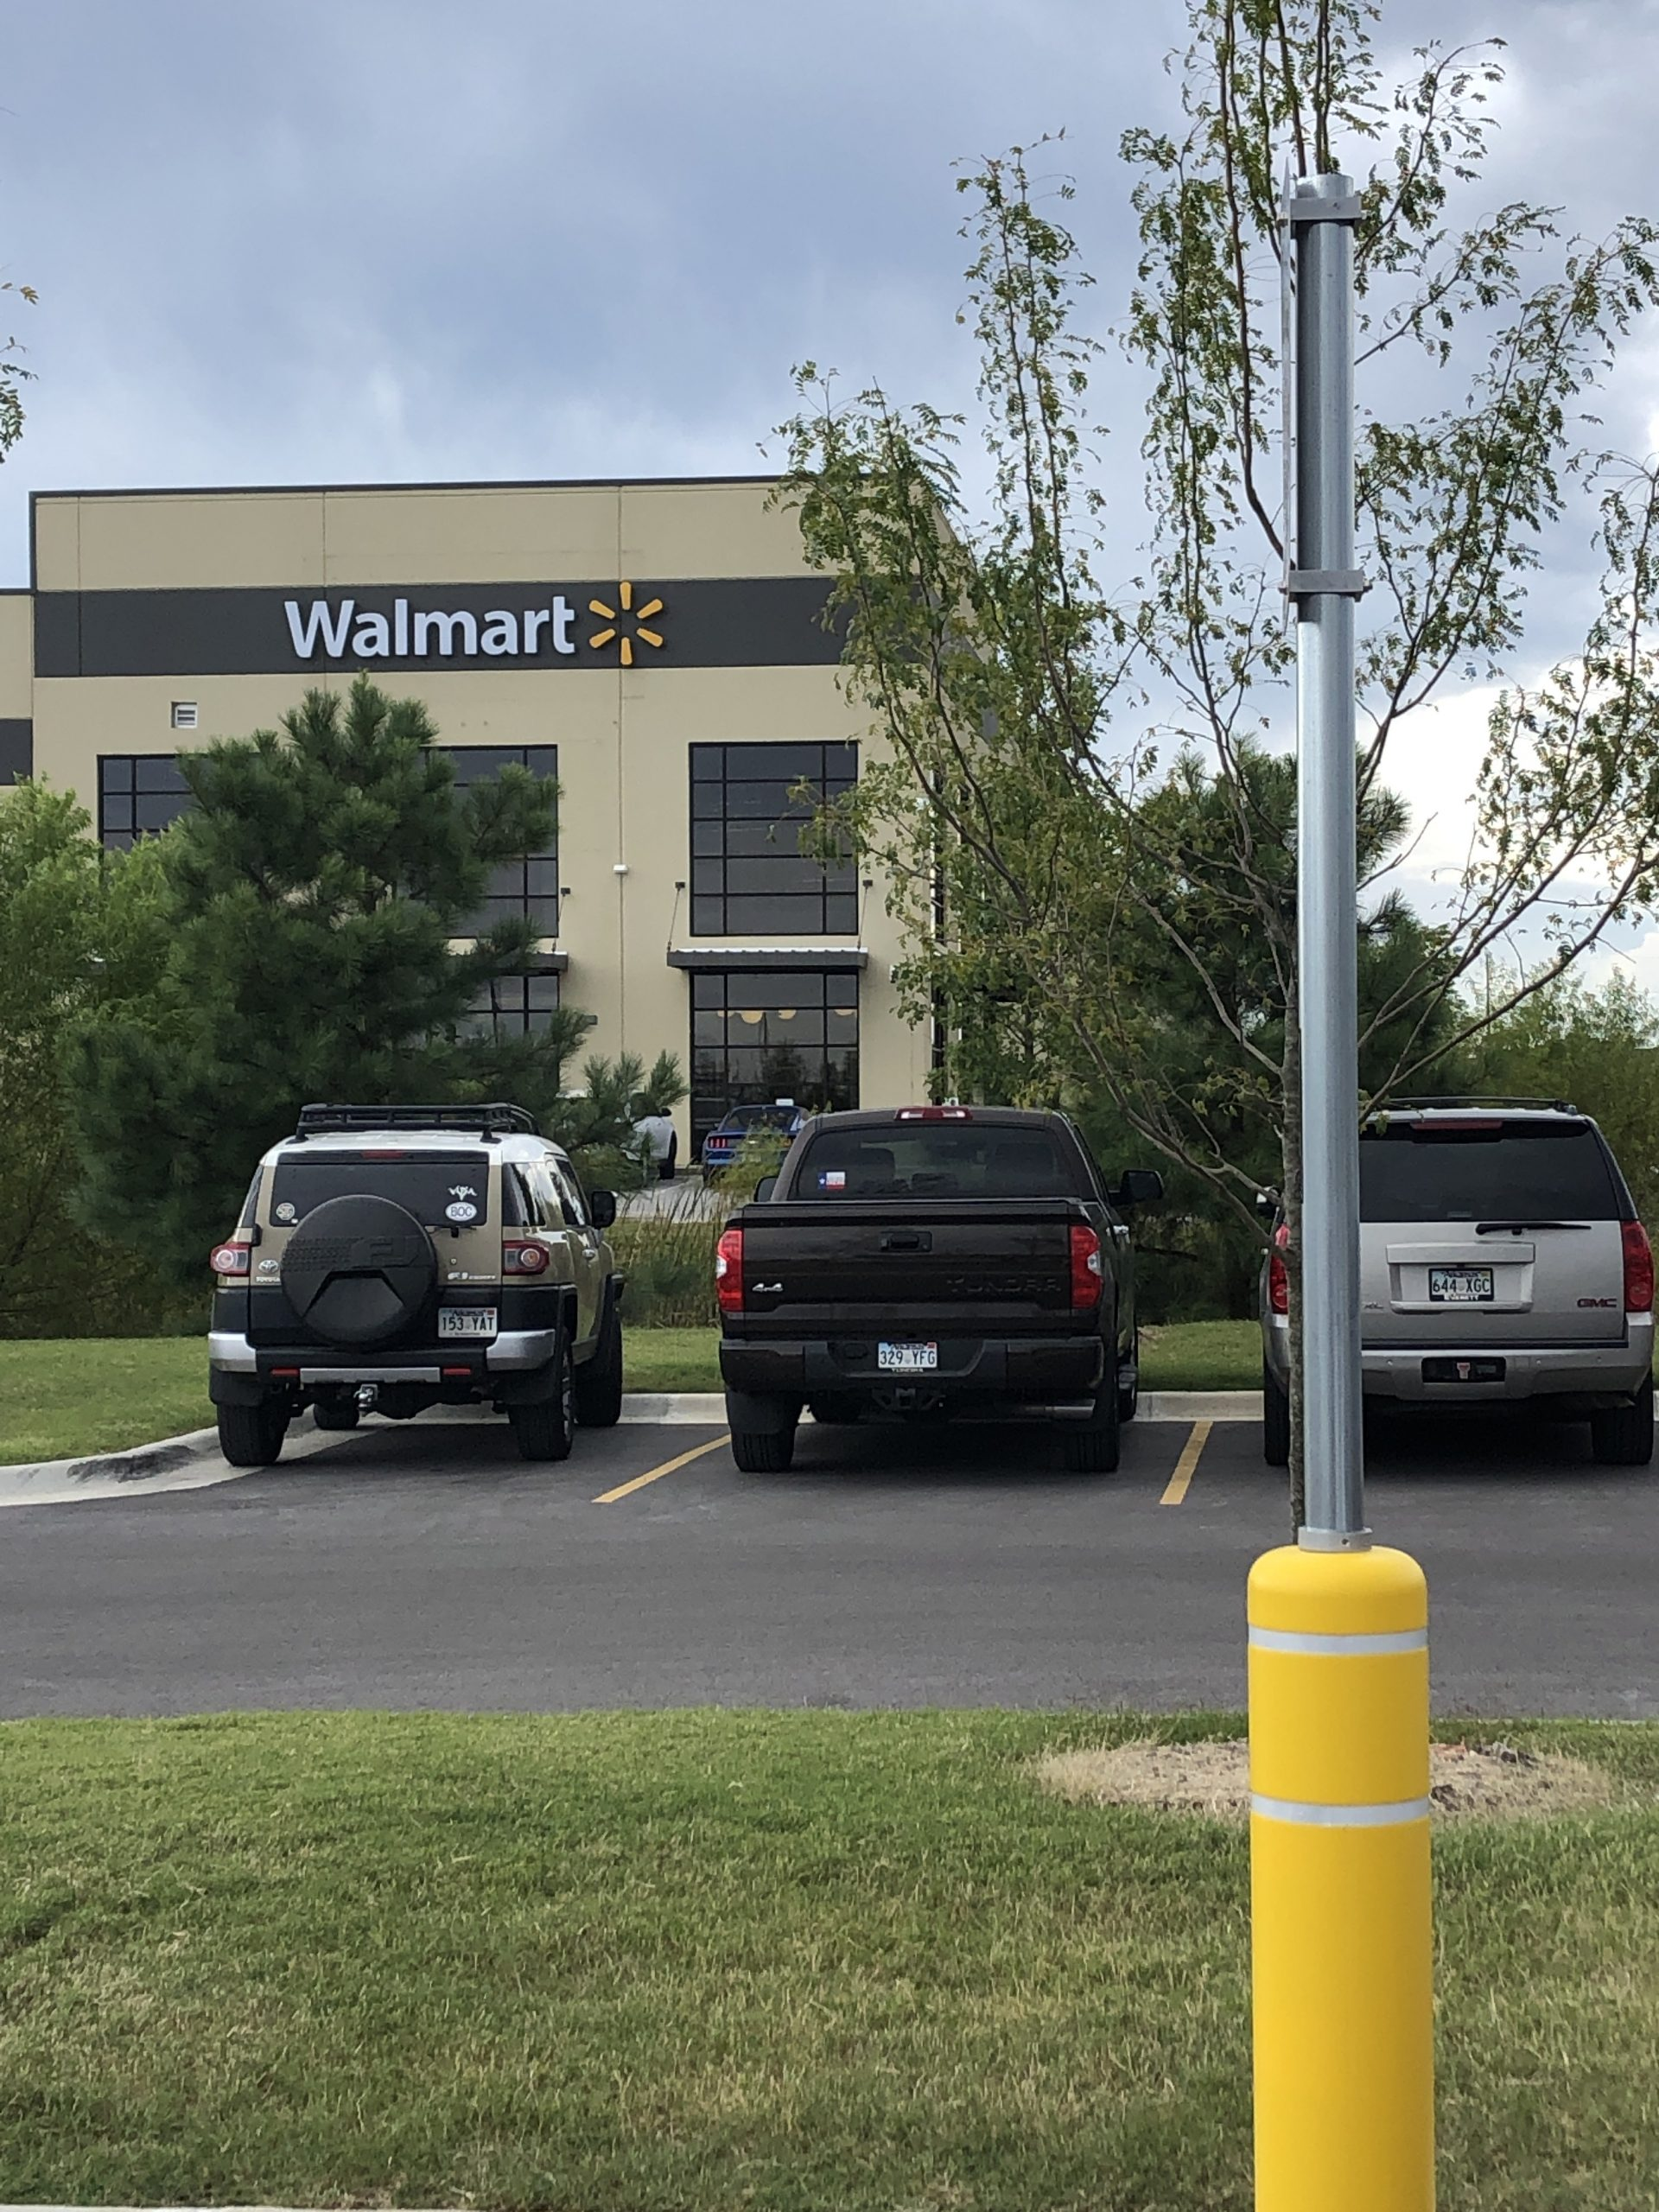 Wal-Mart Corporate Headquarters